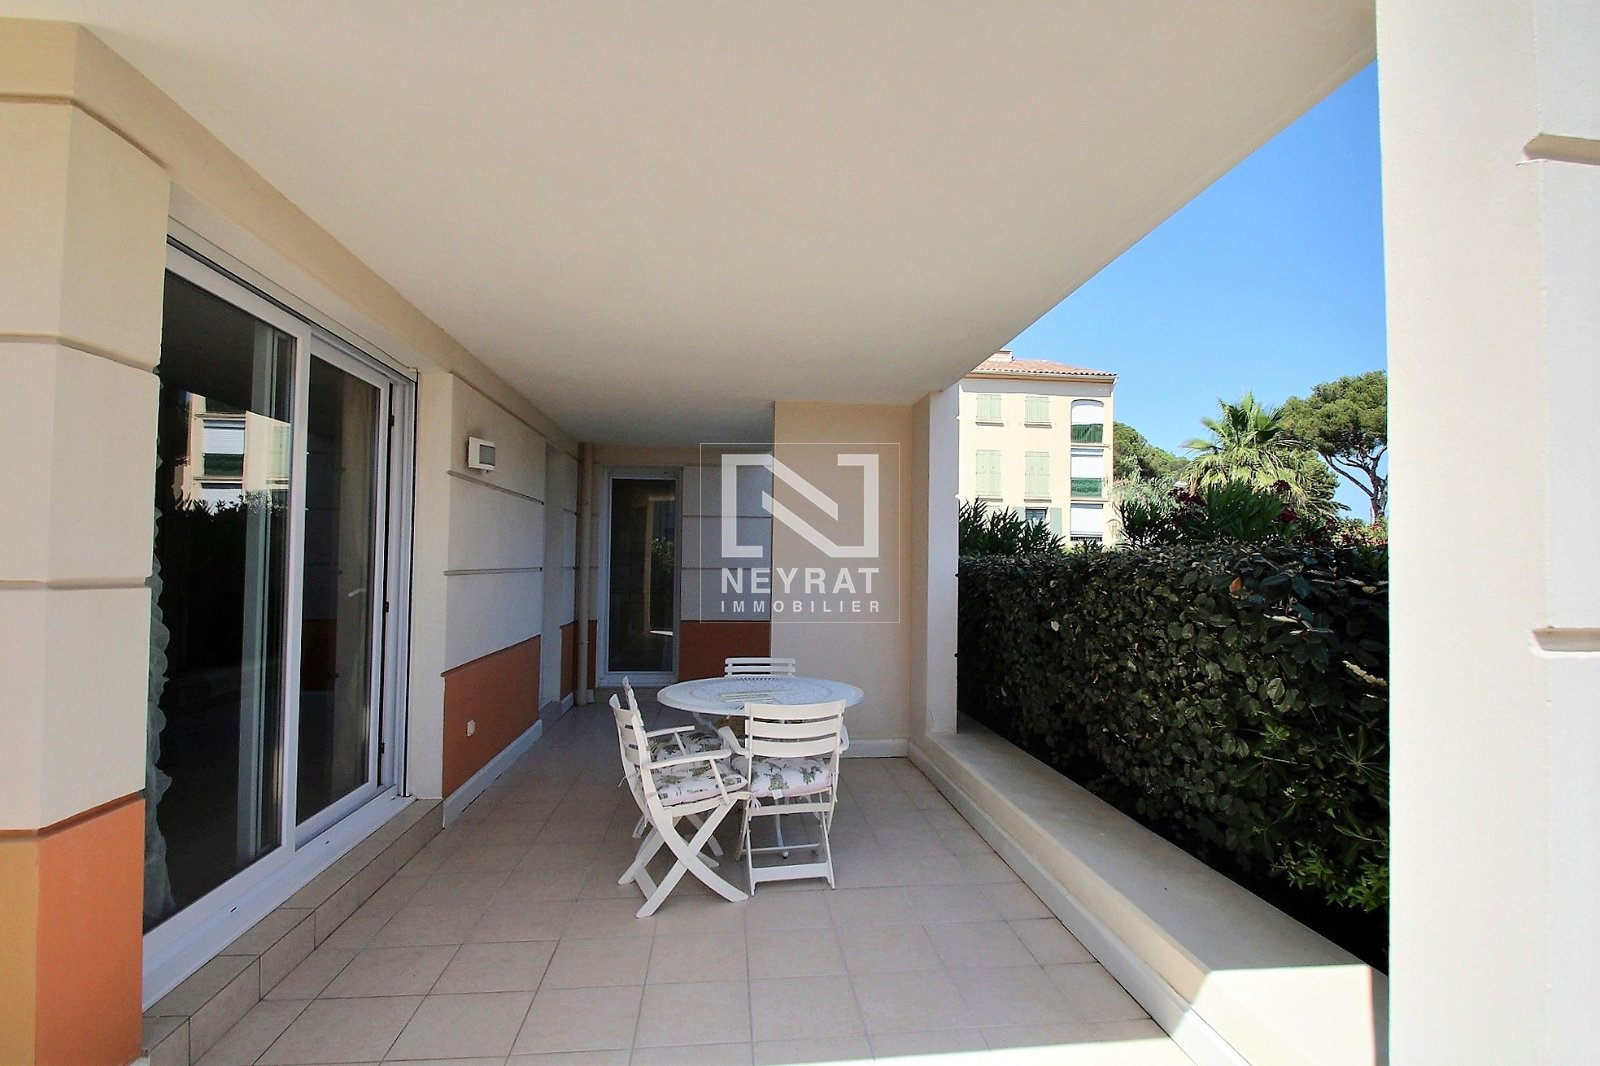 APPARTEMENT T4 A VENDRE - ST AYGULF - 98,9 m2 - 539 000 €